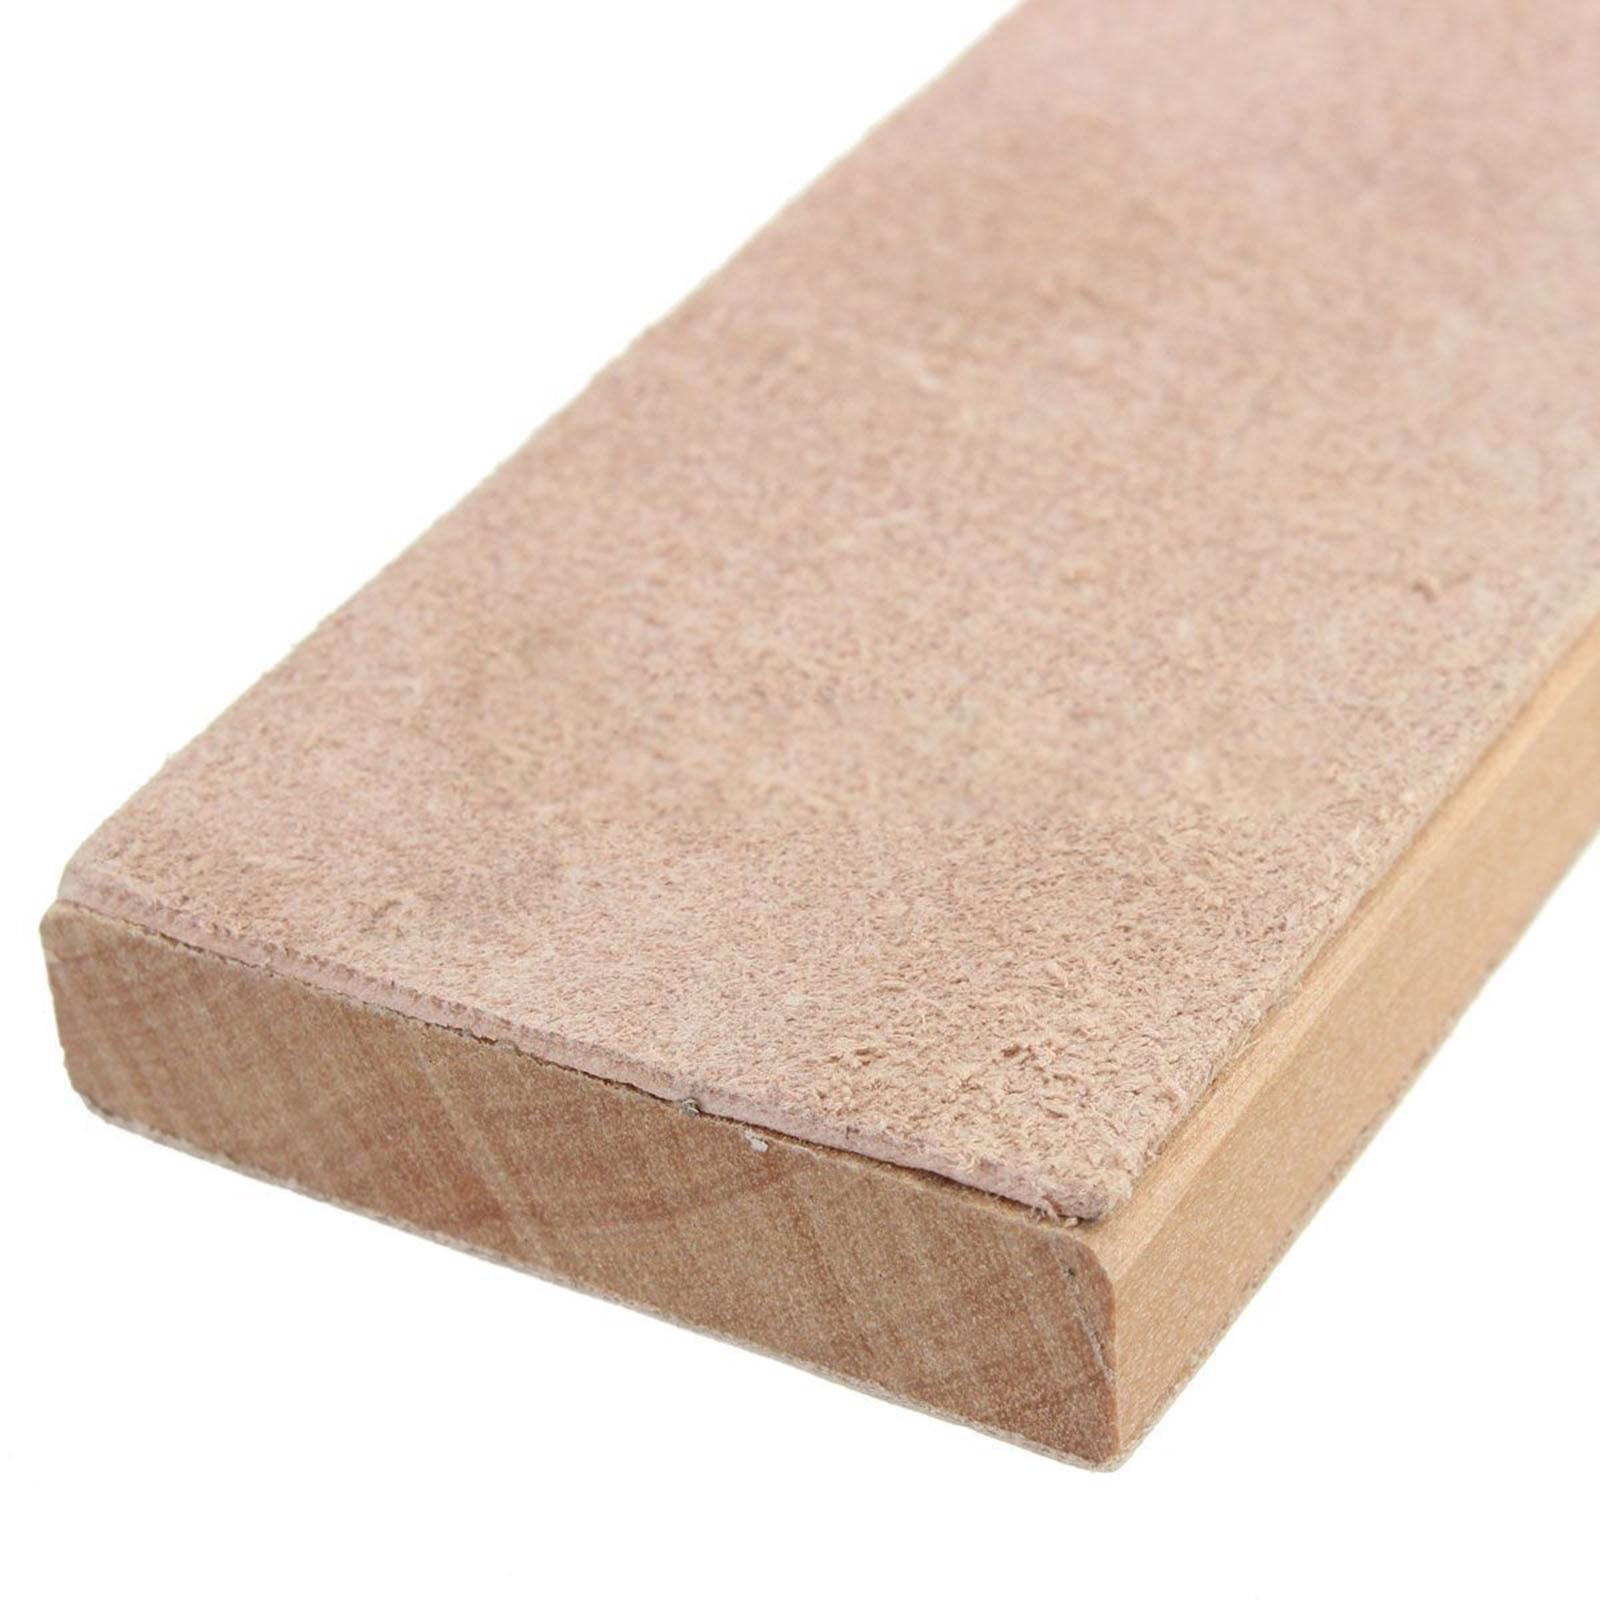 Sharpening Strop Wooden Handle Leather and 50 similar items